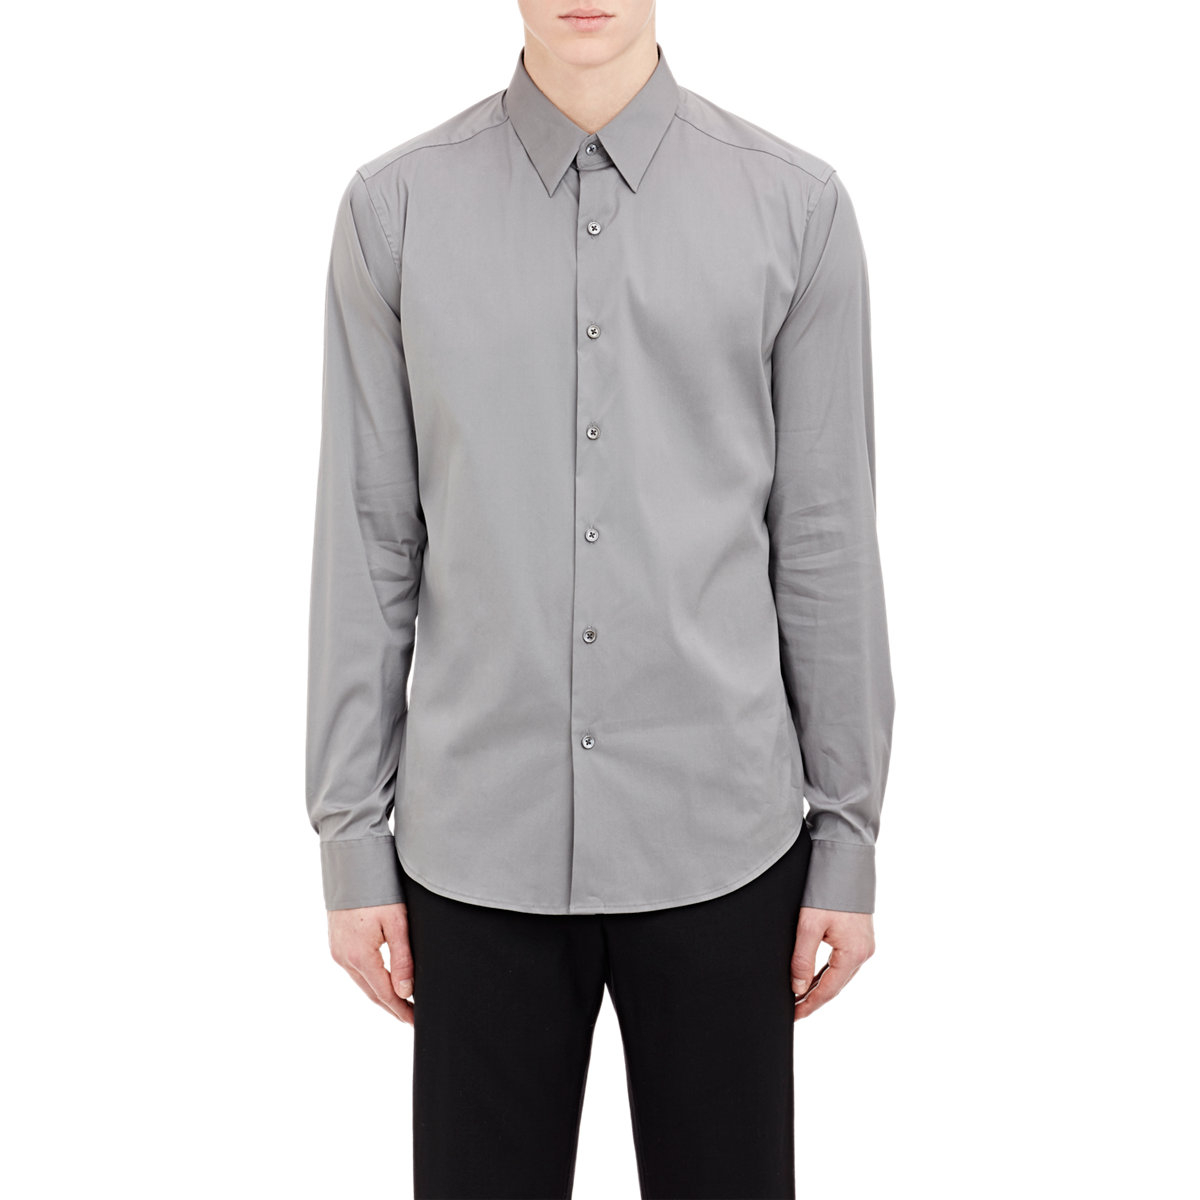 theory poplin dress shirt blue size small in gray for men